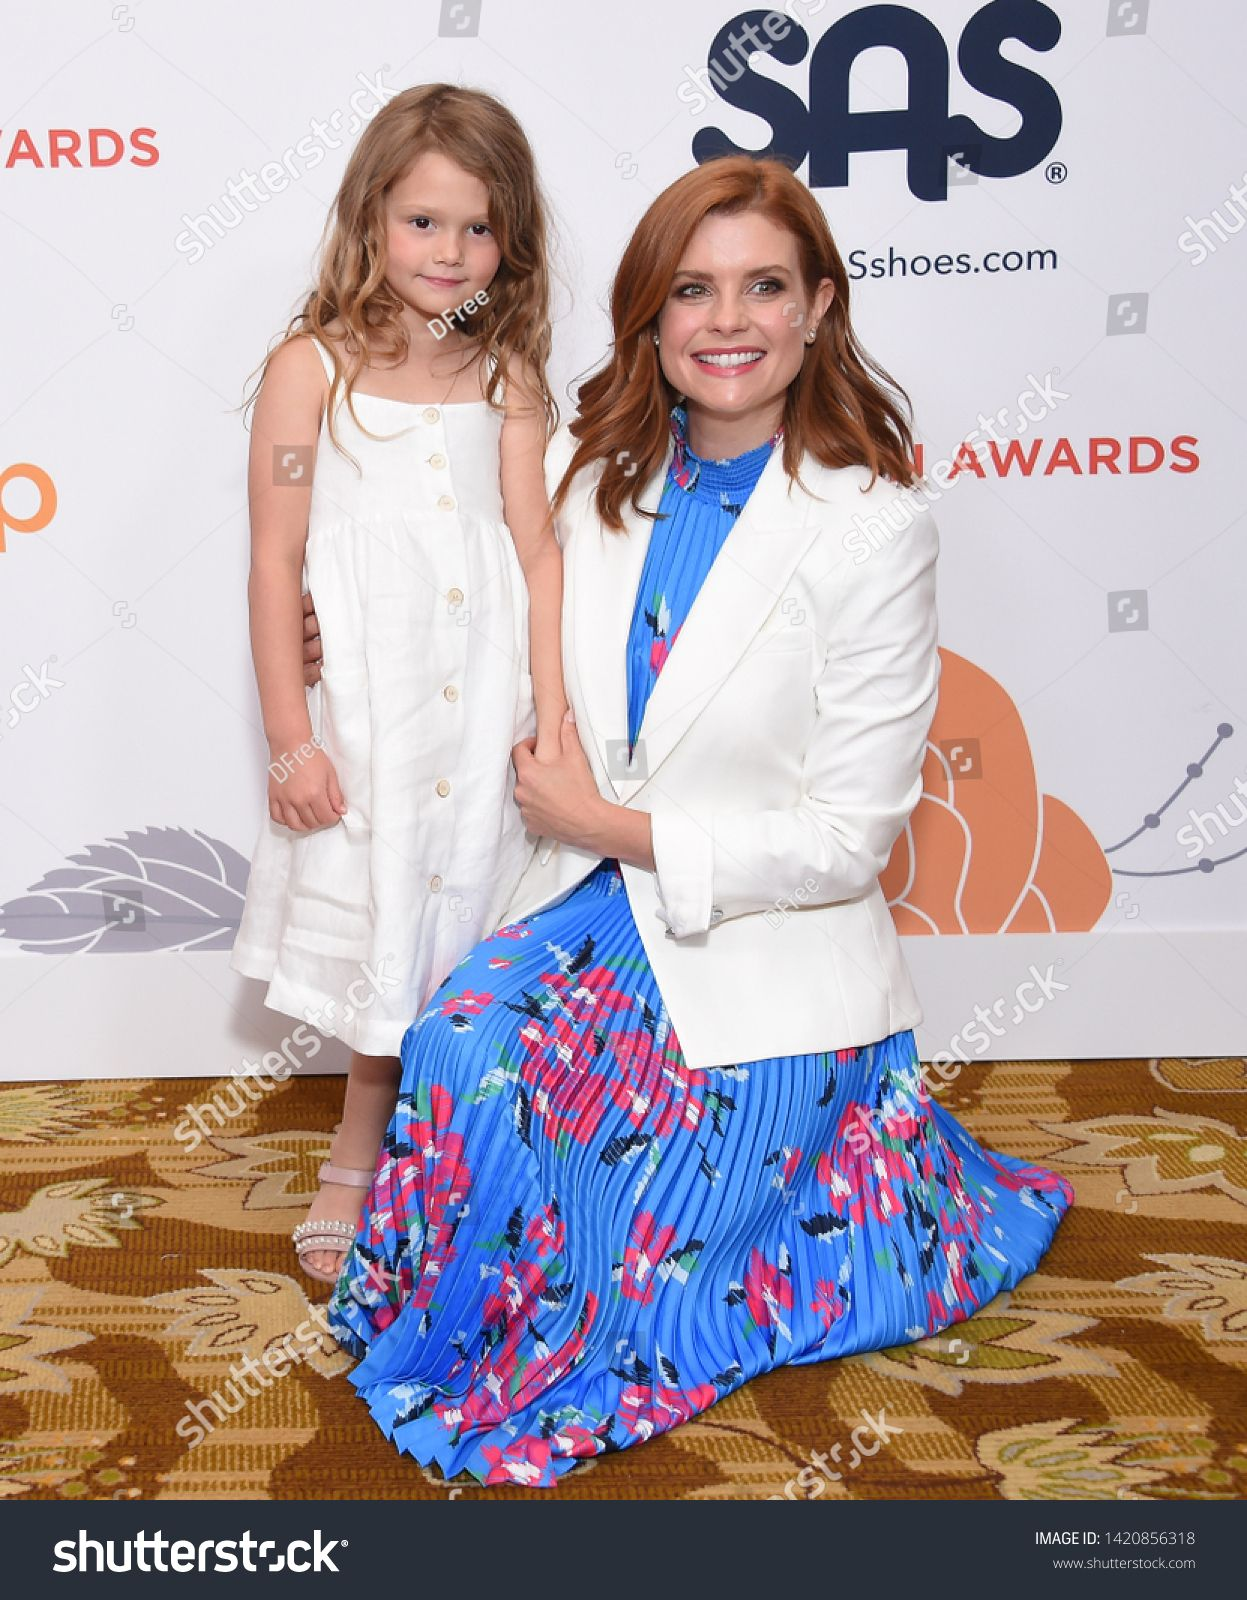 Los Angeles May 31 Joanna Garcia Swisher And Emerson Jay Swisher Arrives For The Inspiration Awards Benefiting St Joanna Garcia Joanna Garcia Swisher Joanna